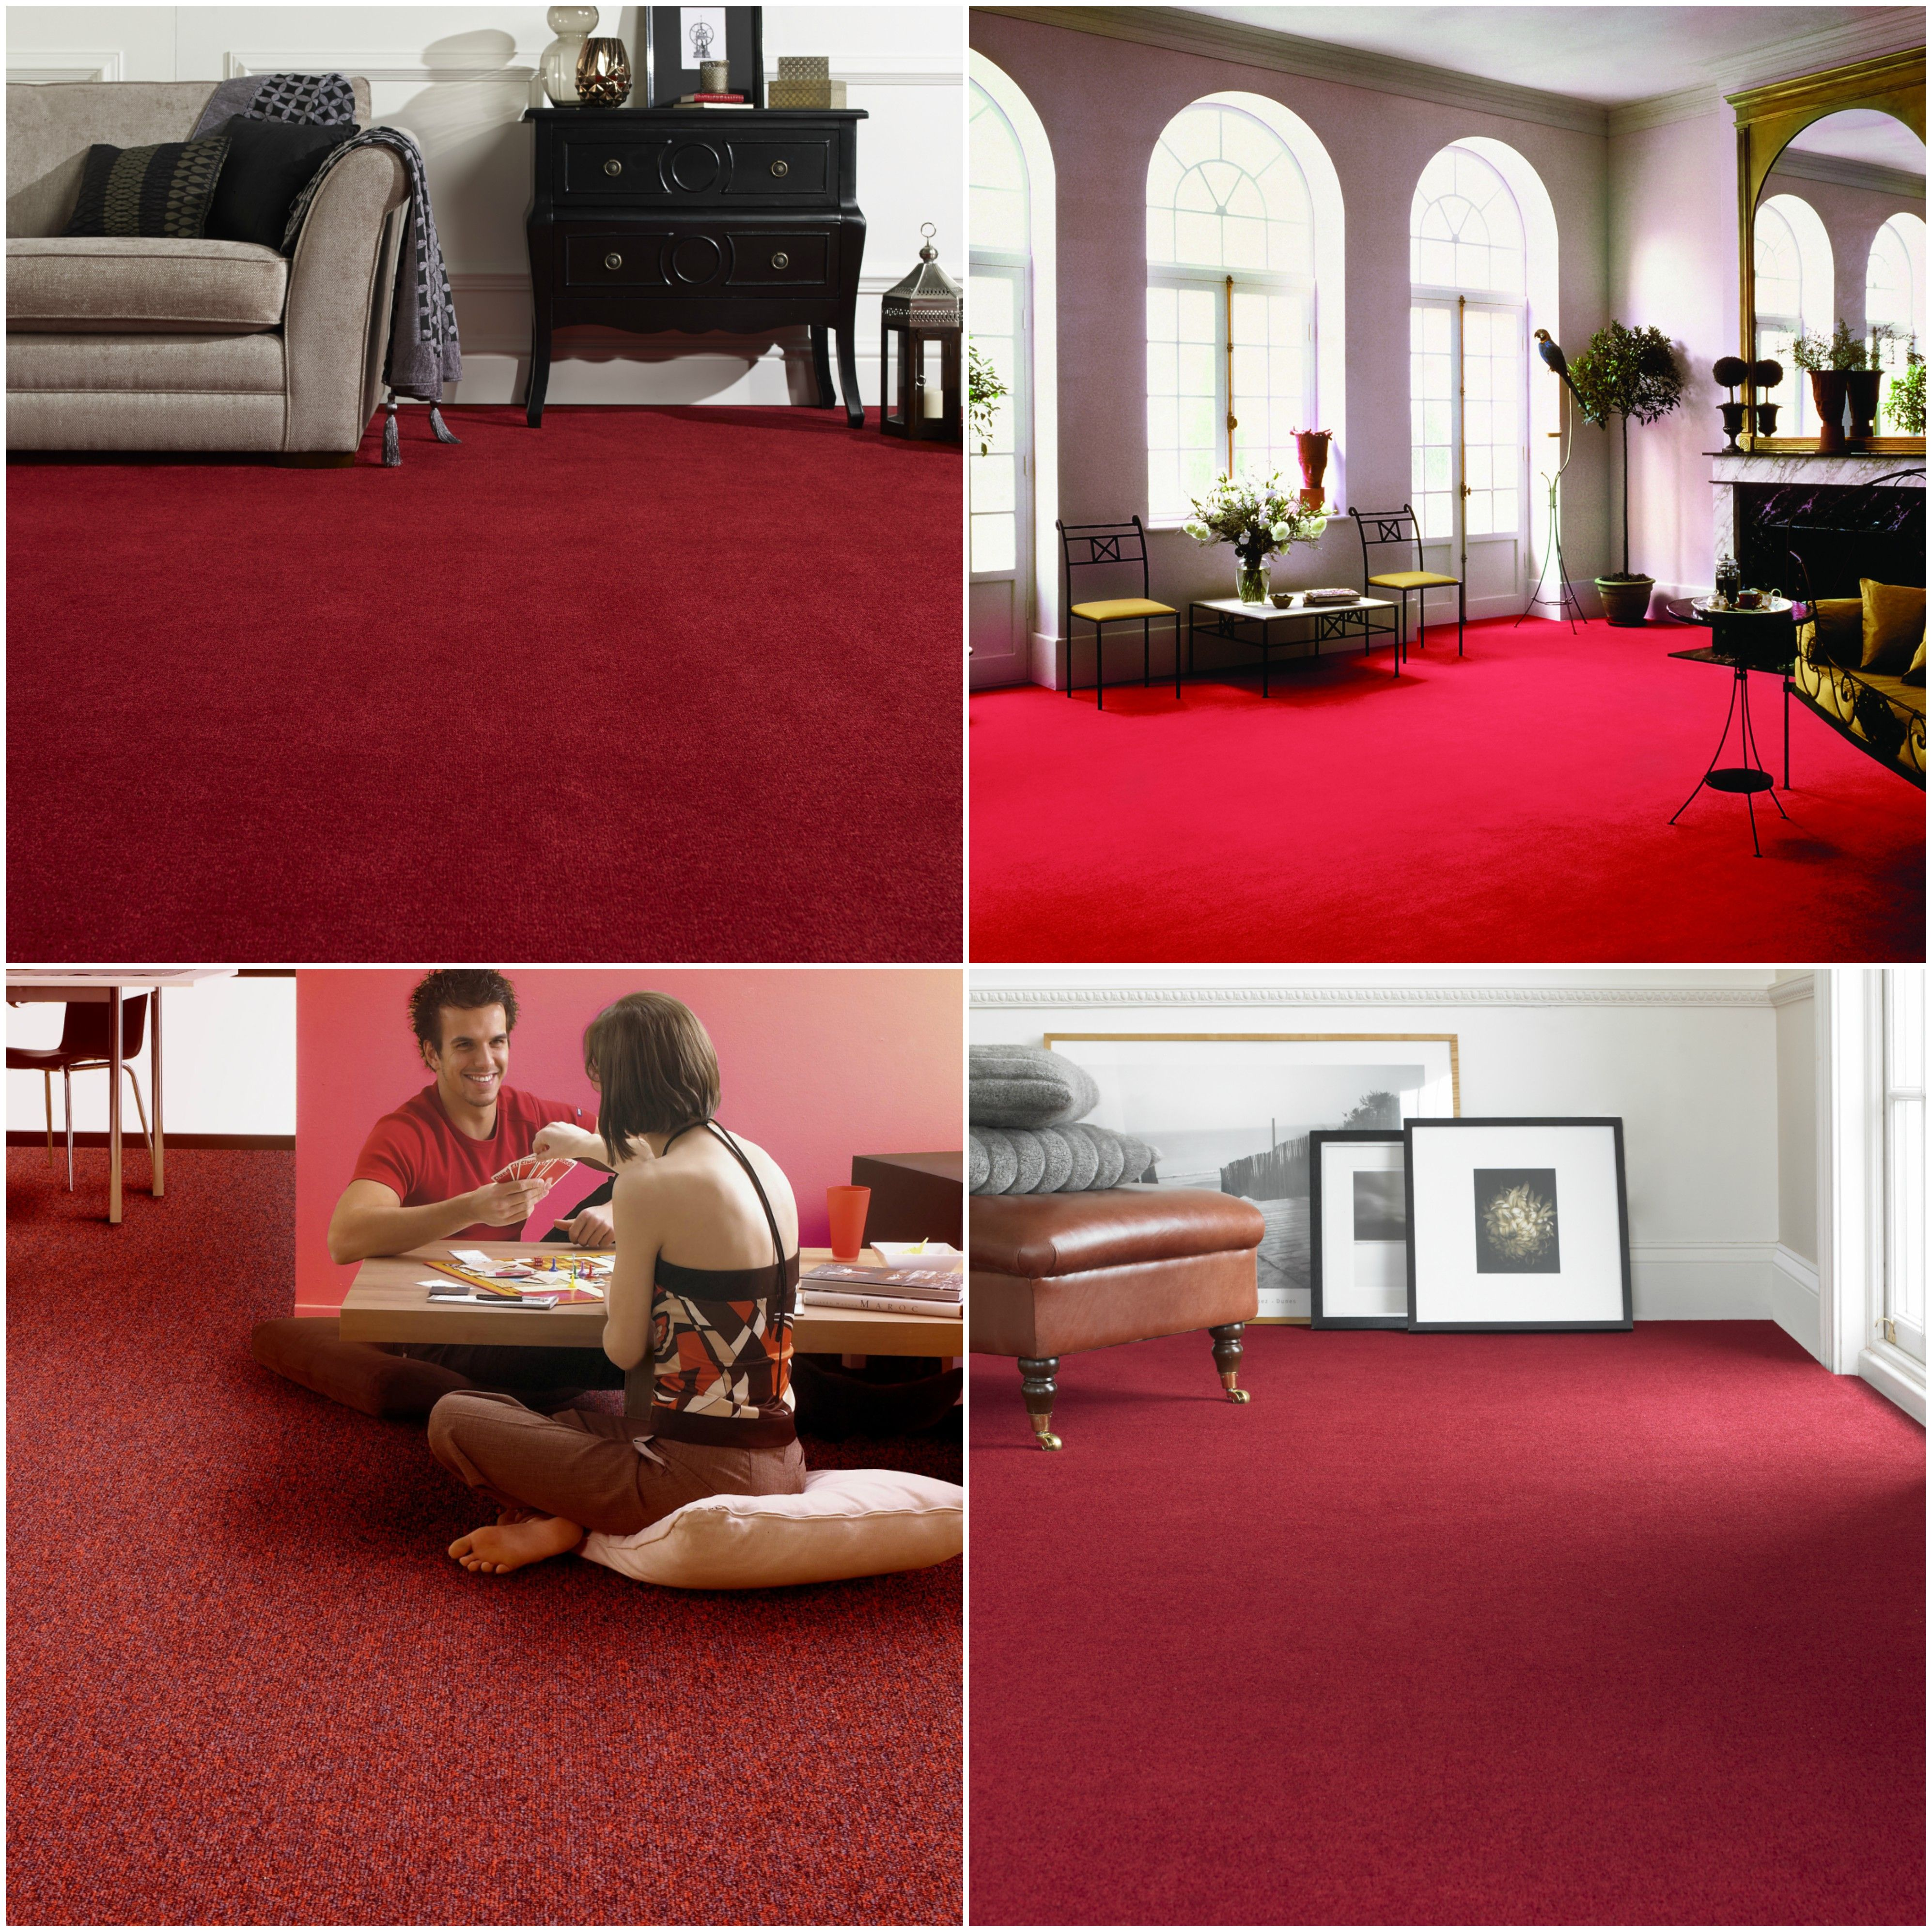 Bring A Little Romance Into Your Home With A Deep Rich Red Or Bold Burgundy Carpet Burgundy Living Room Red Curtains Living Room Contemporary Rugs Living Room